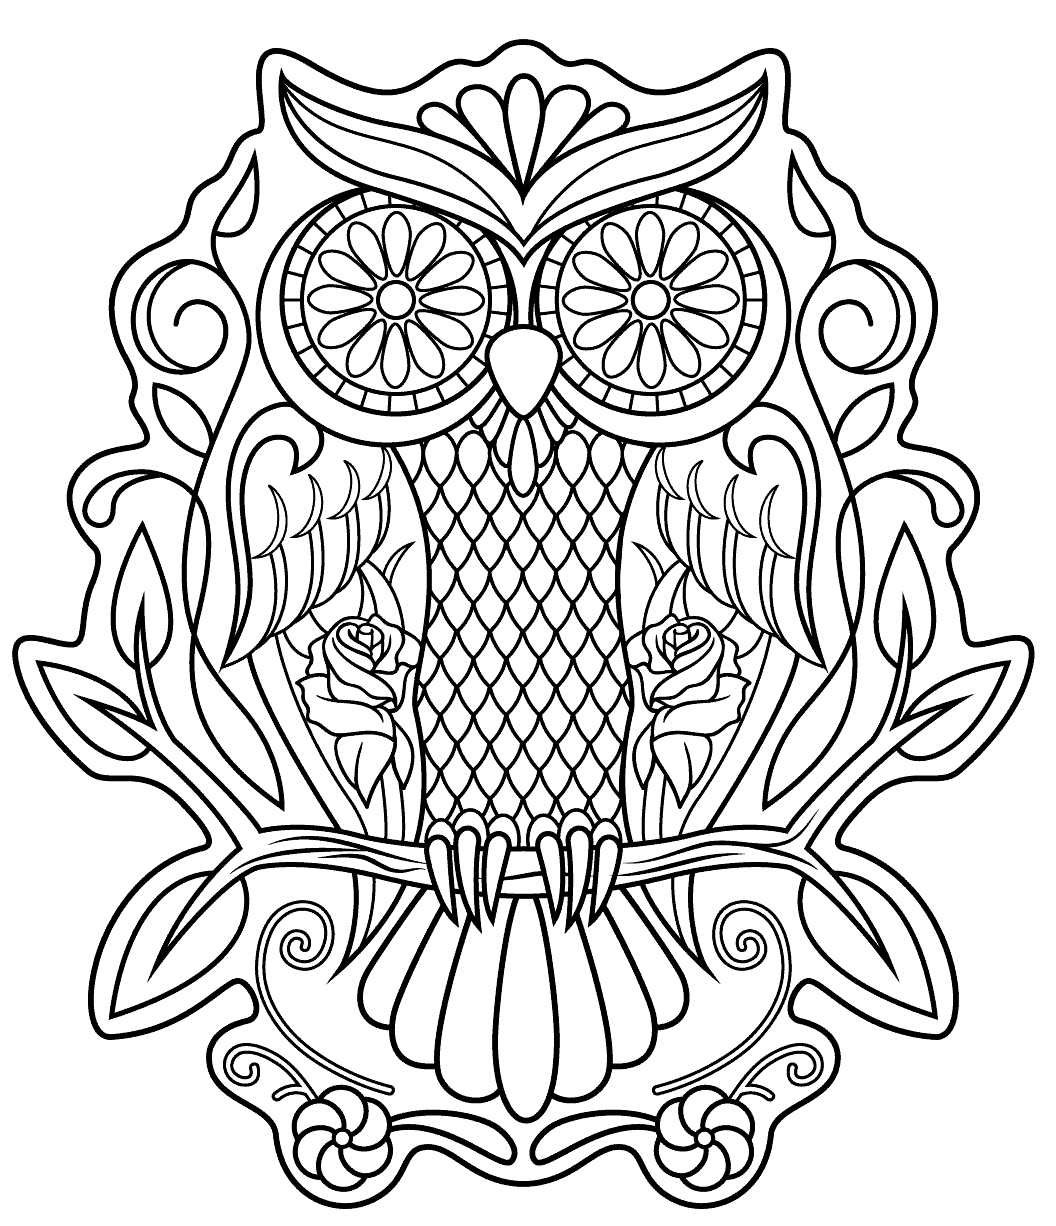 skulls to color printable skulls coloring pages for kids cool2bkids color to skulls